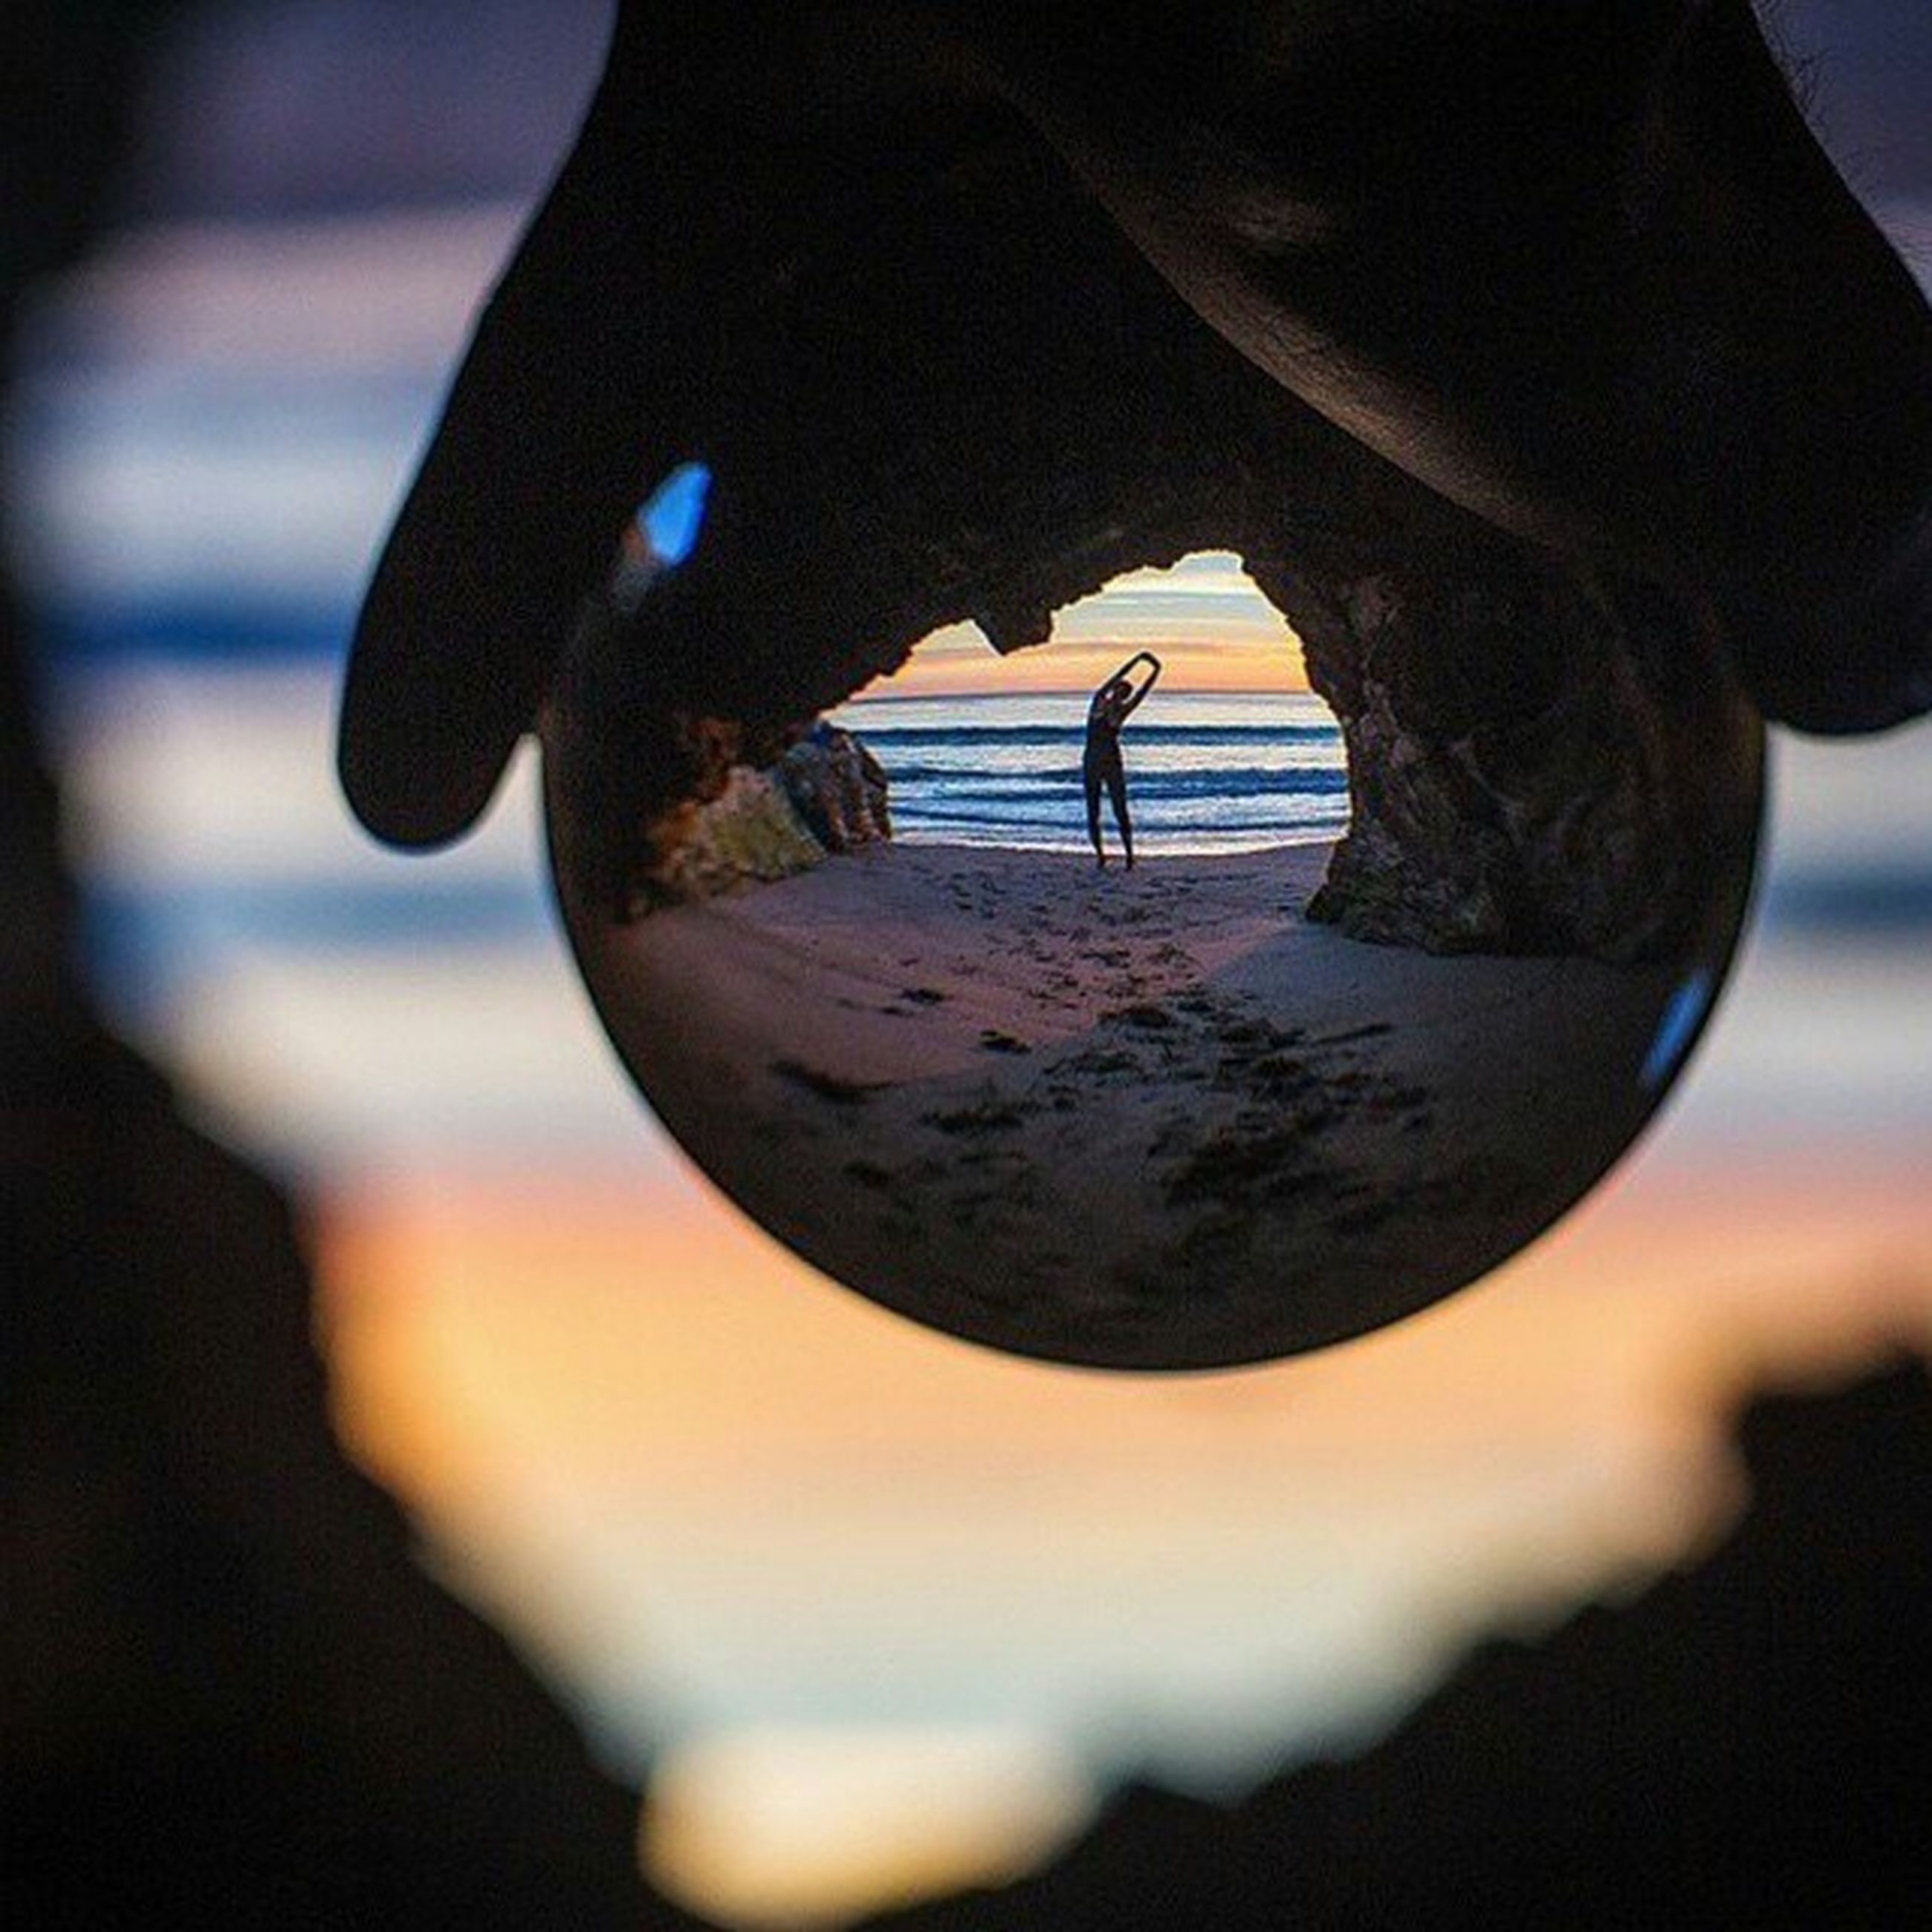 water, close-up, focus on foreground, reflection, lifestyles, part of, leisure activity, sky, person, unrecognizable person, selective focus, standing, holding, outdoors, cropped, nature, day